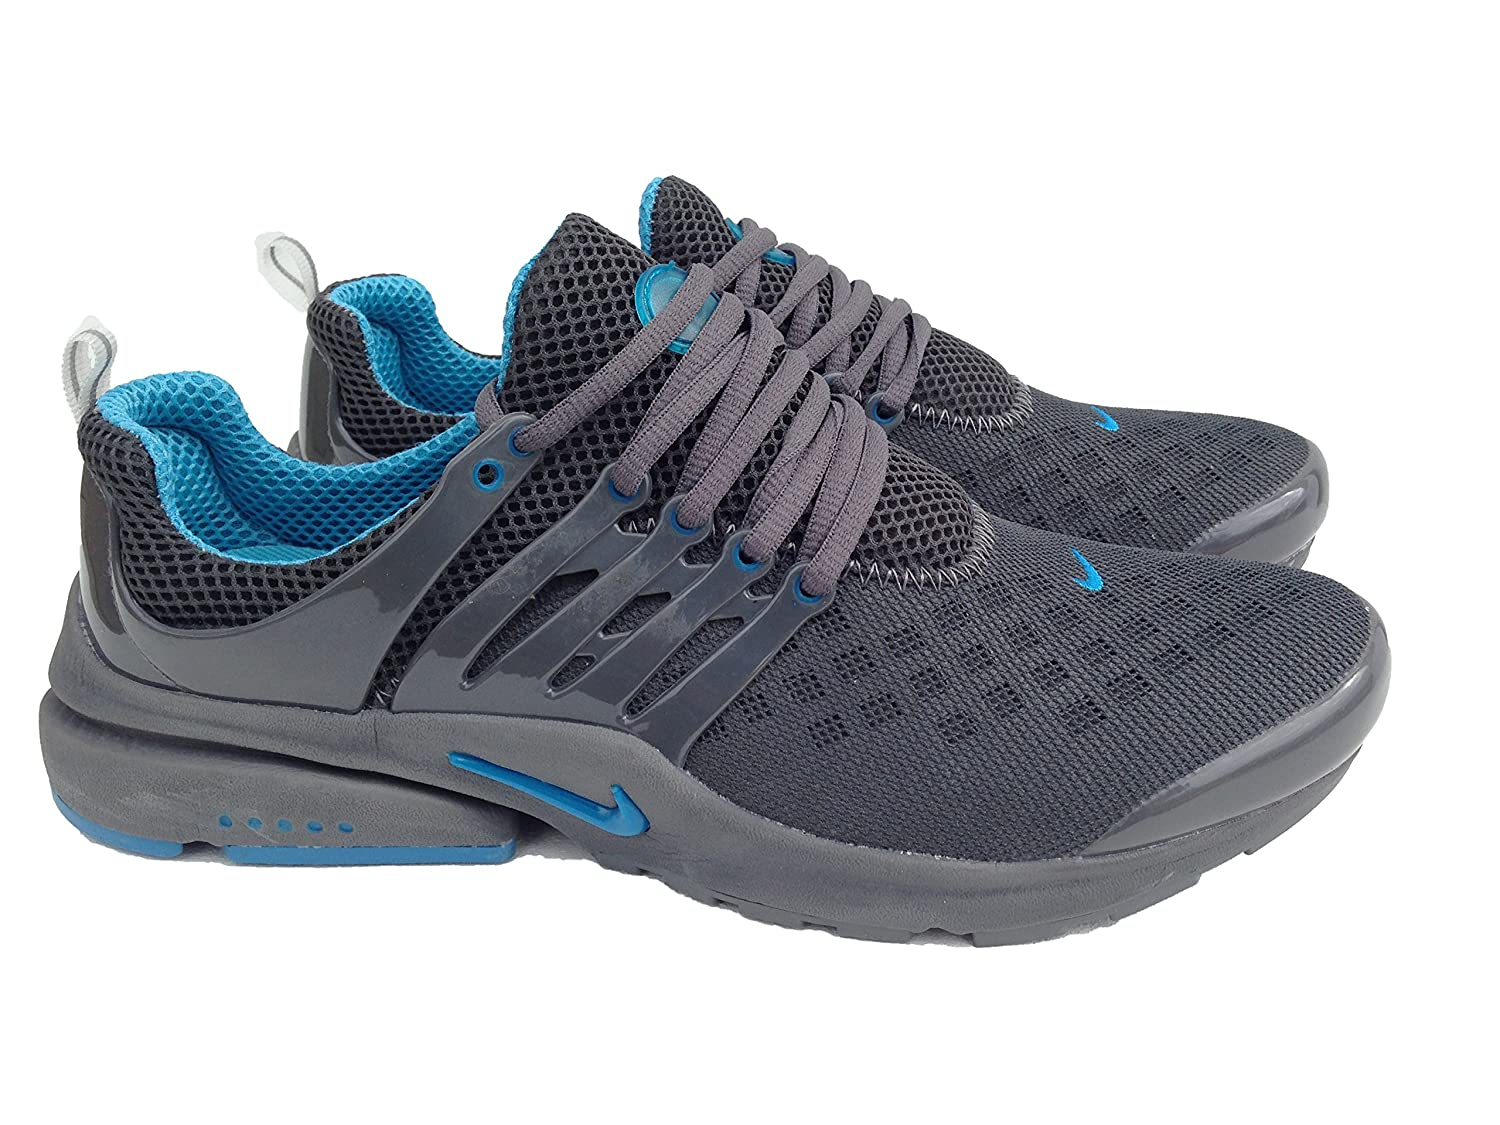 super popular 1a1aa 2dff7 Nike Air Presto Carbon Grey Blue Mens Trainers Shox Shoes ... Sizes 6-11  (10): Amazon.co.uk: Sports & Outdoors